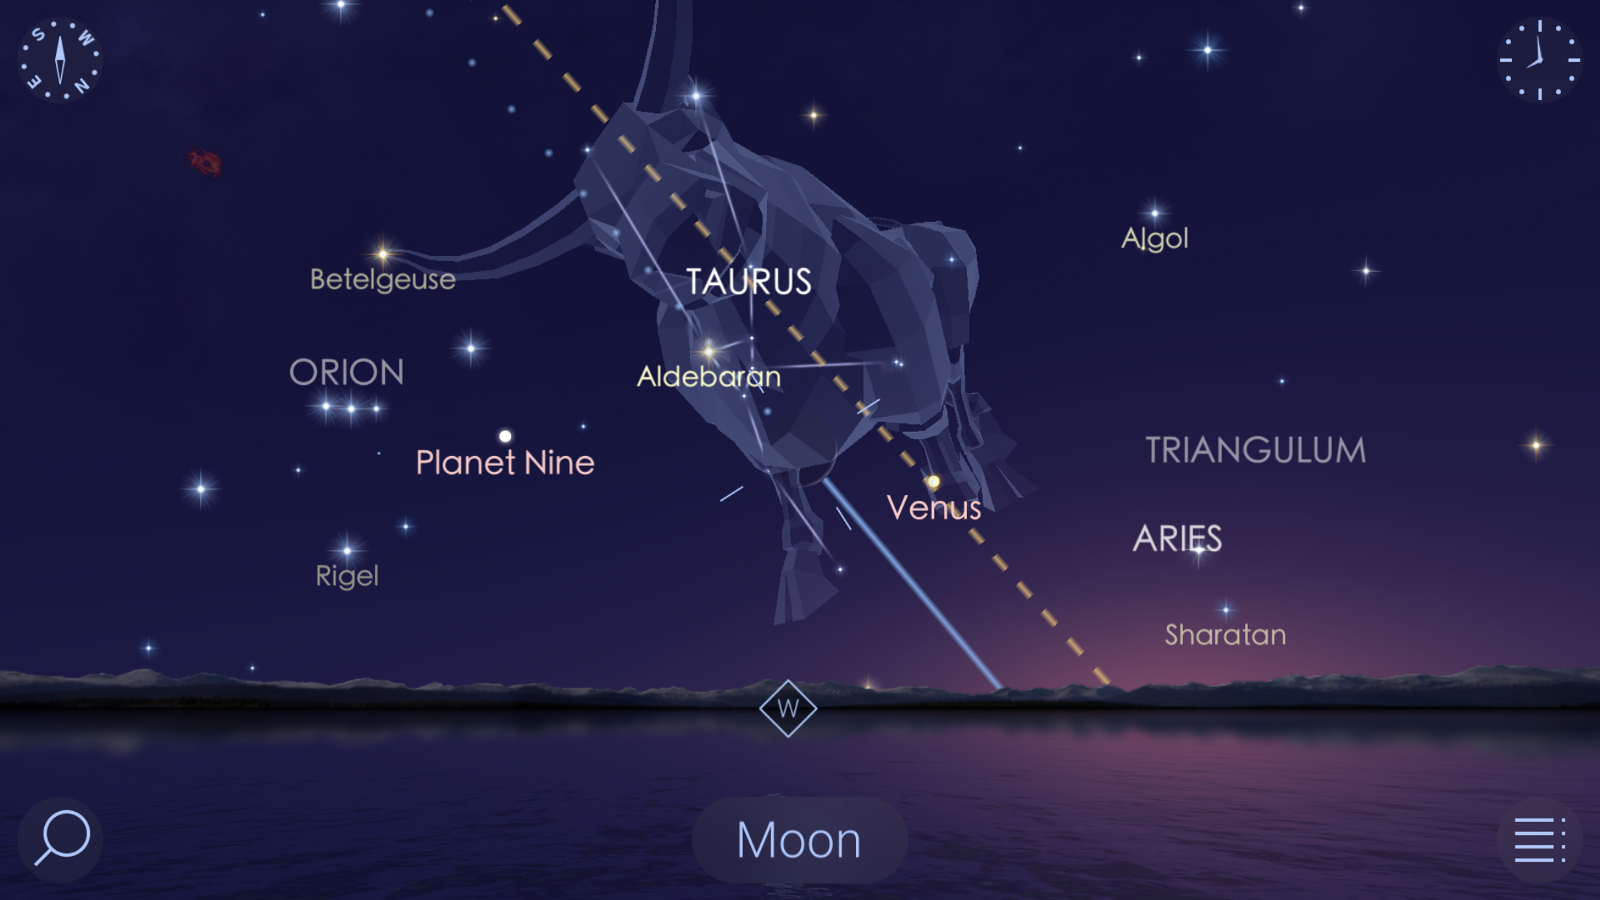 On Wednesday evening, the moon will cross through the V-shaped face of  Taurus the Bull, shown here at 9:45 pm local time. Parts of the world will  see the PlusPng.com  - Moon And Star PNG HD